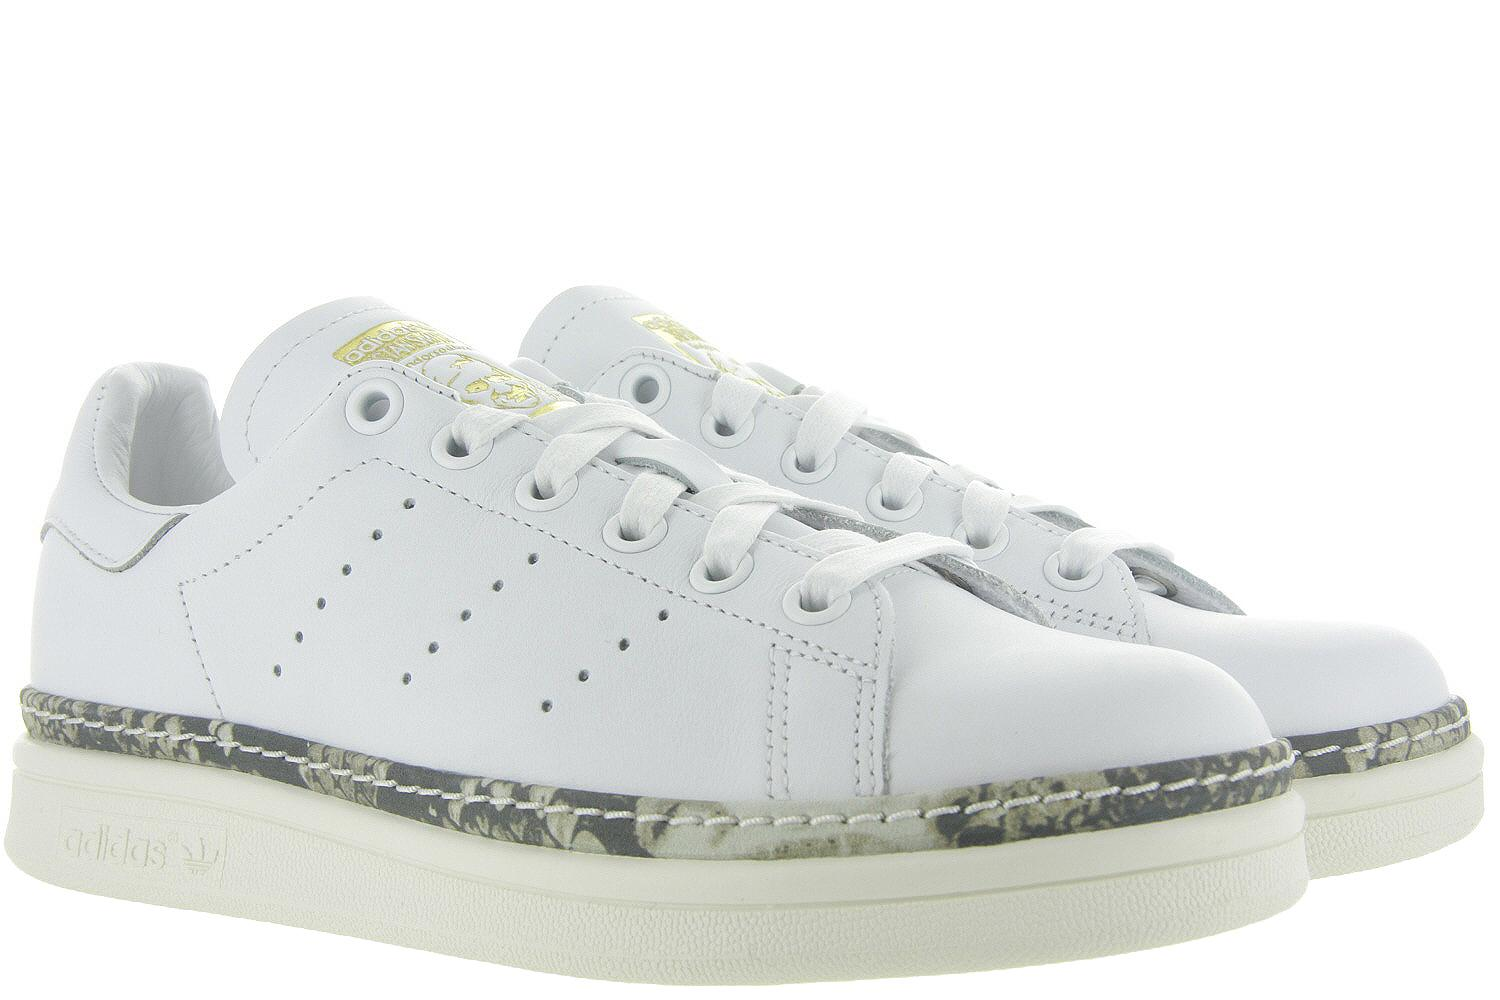 f6f133a278f Damesschoenen Adidas Sneakers - Stan Smith New Bold Wit - Adidas ...